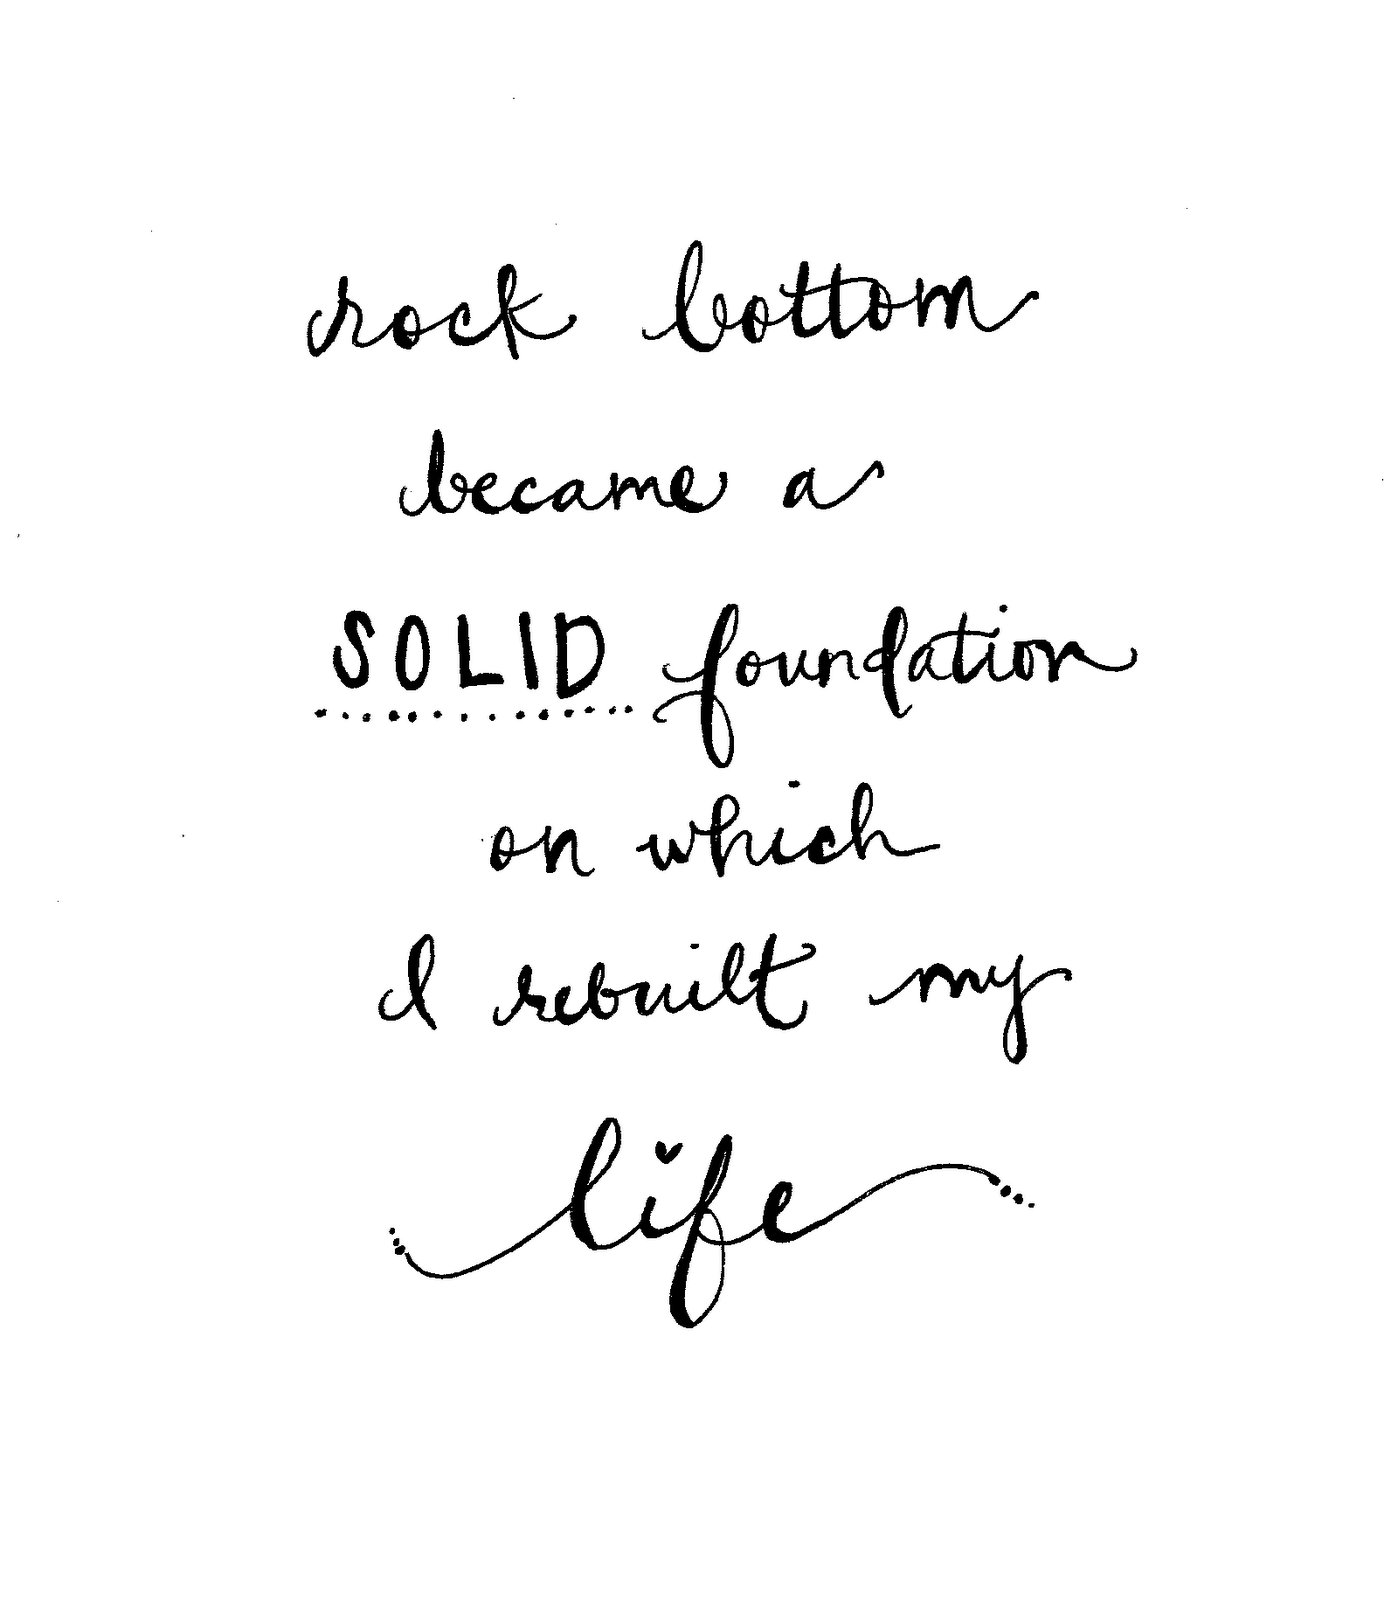 Foundation Quotes Life_Quotes_Life_Quote_Font  Rock Bottom Wisdom And Quote Life